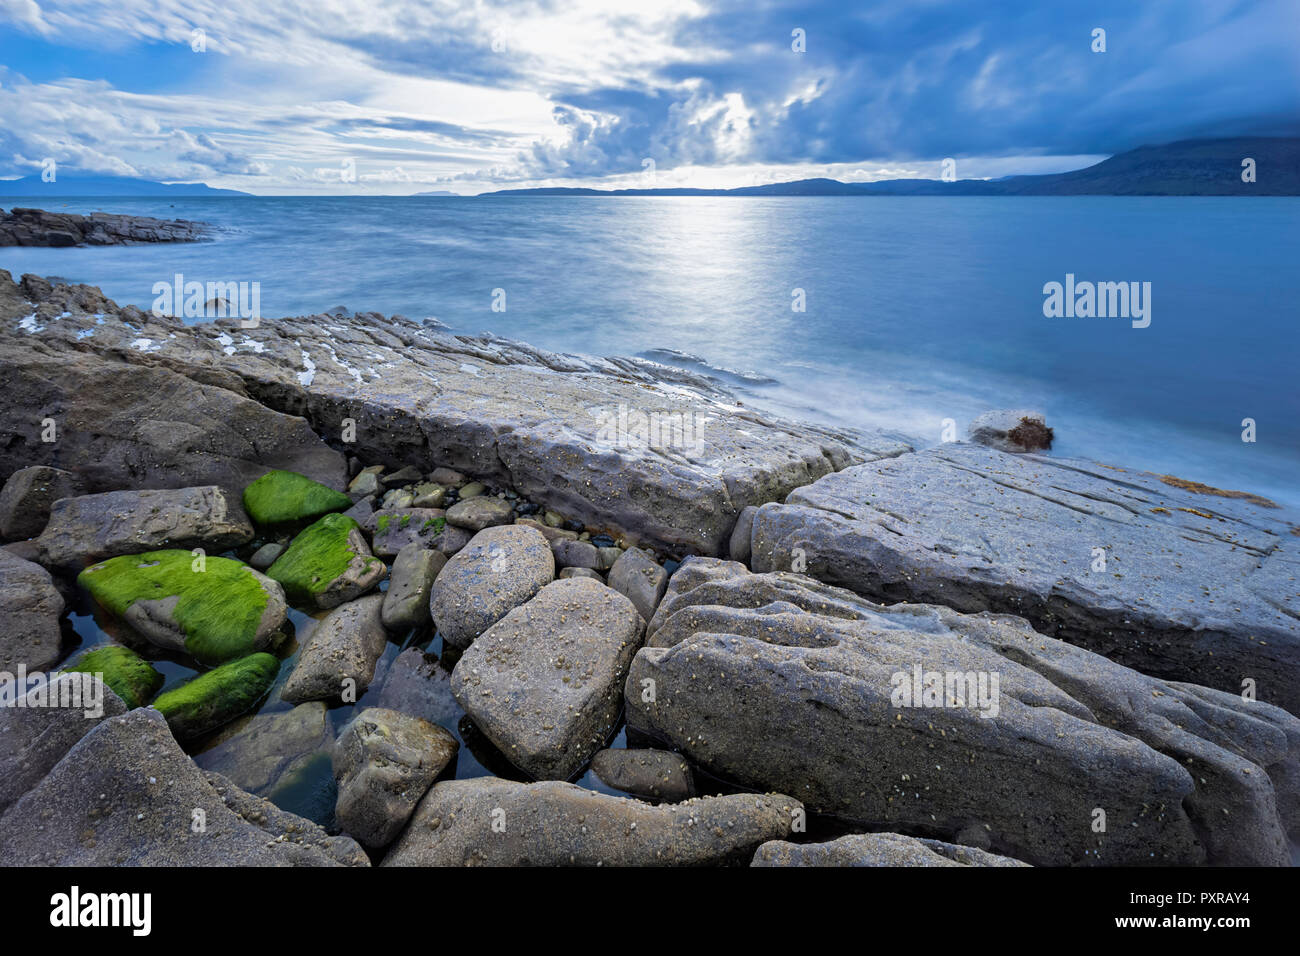 UK, Scotland, Inner Hebrides, Isle of Skye, beach near Elgol - Stock Image